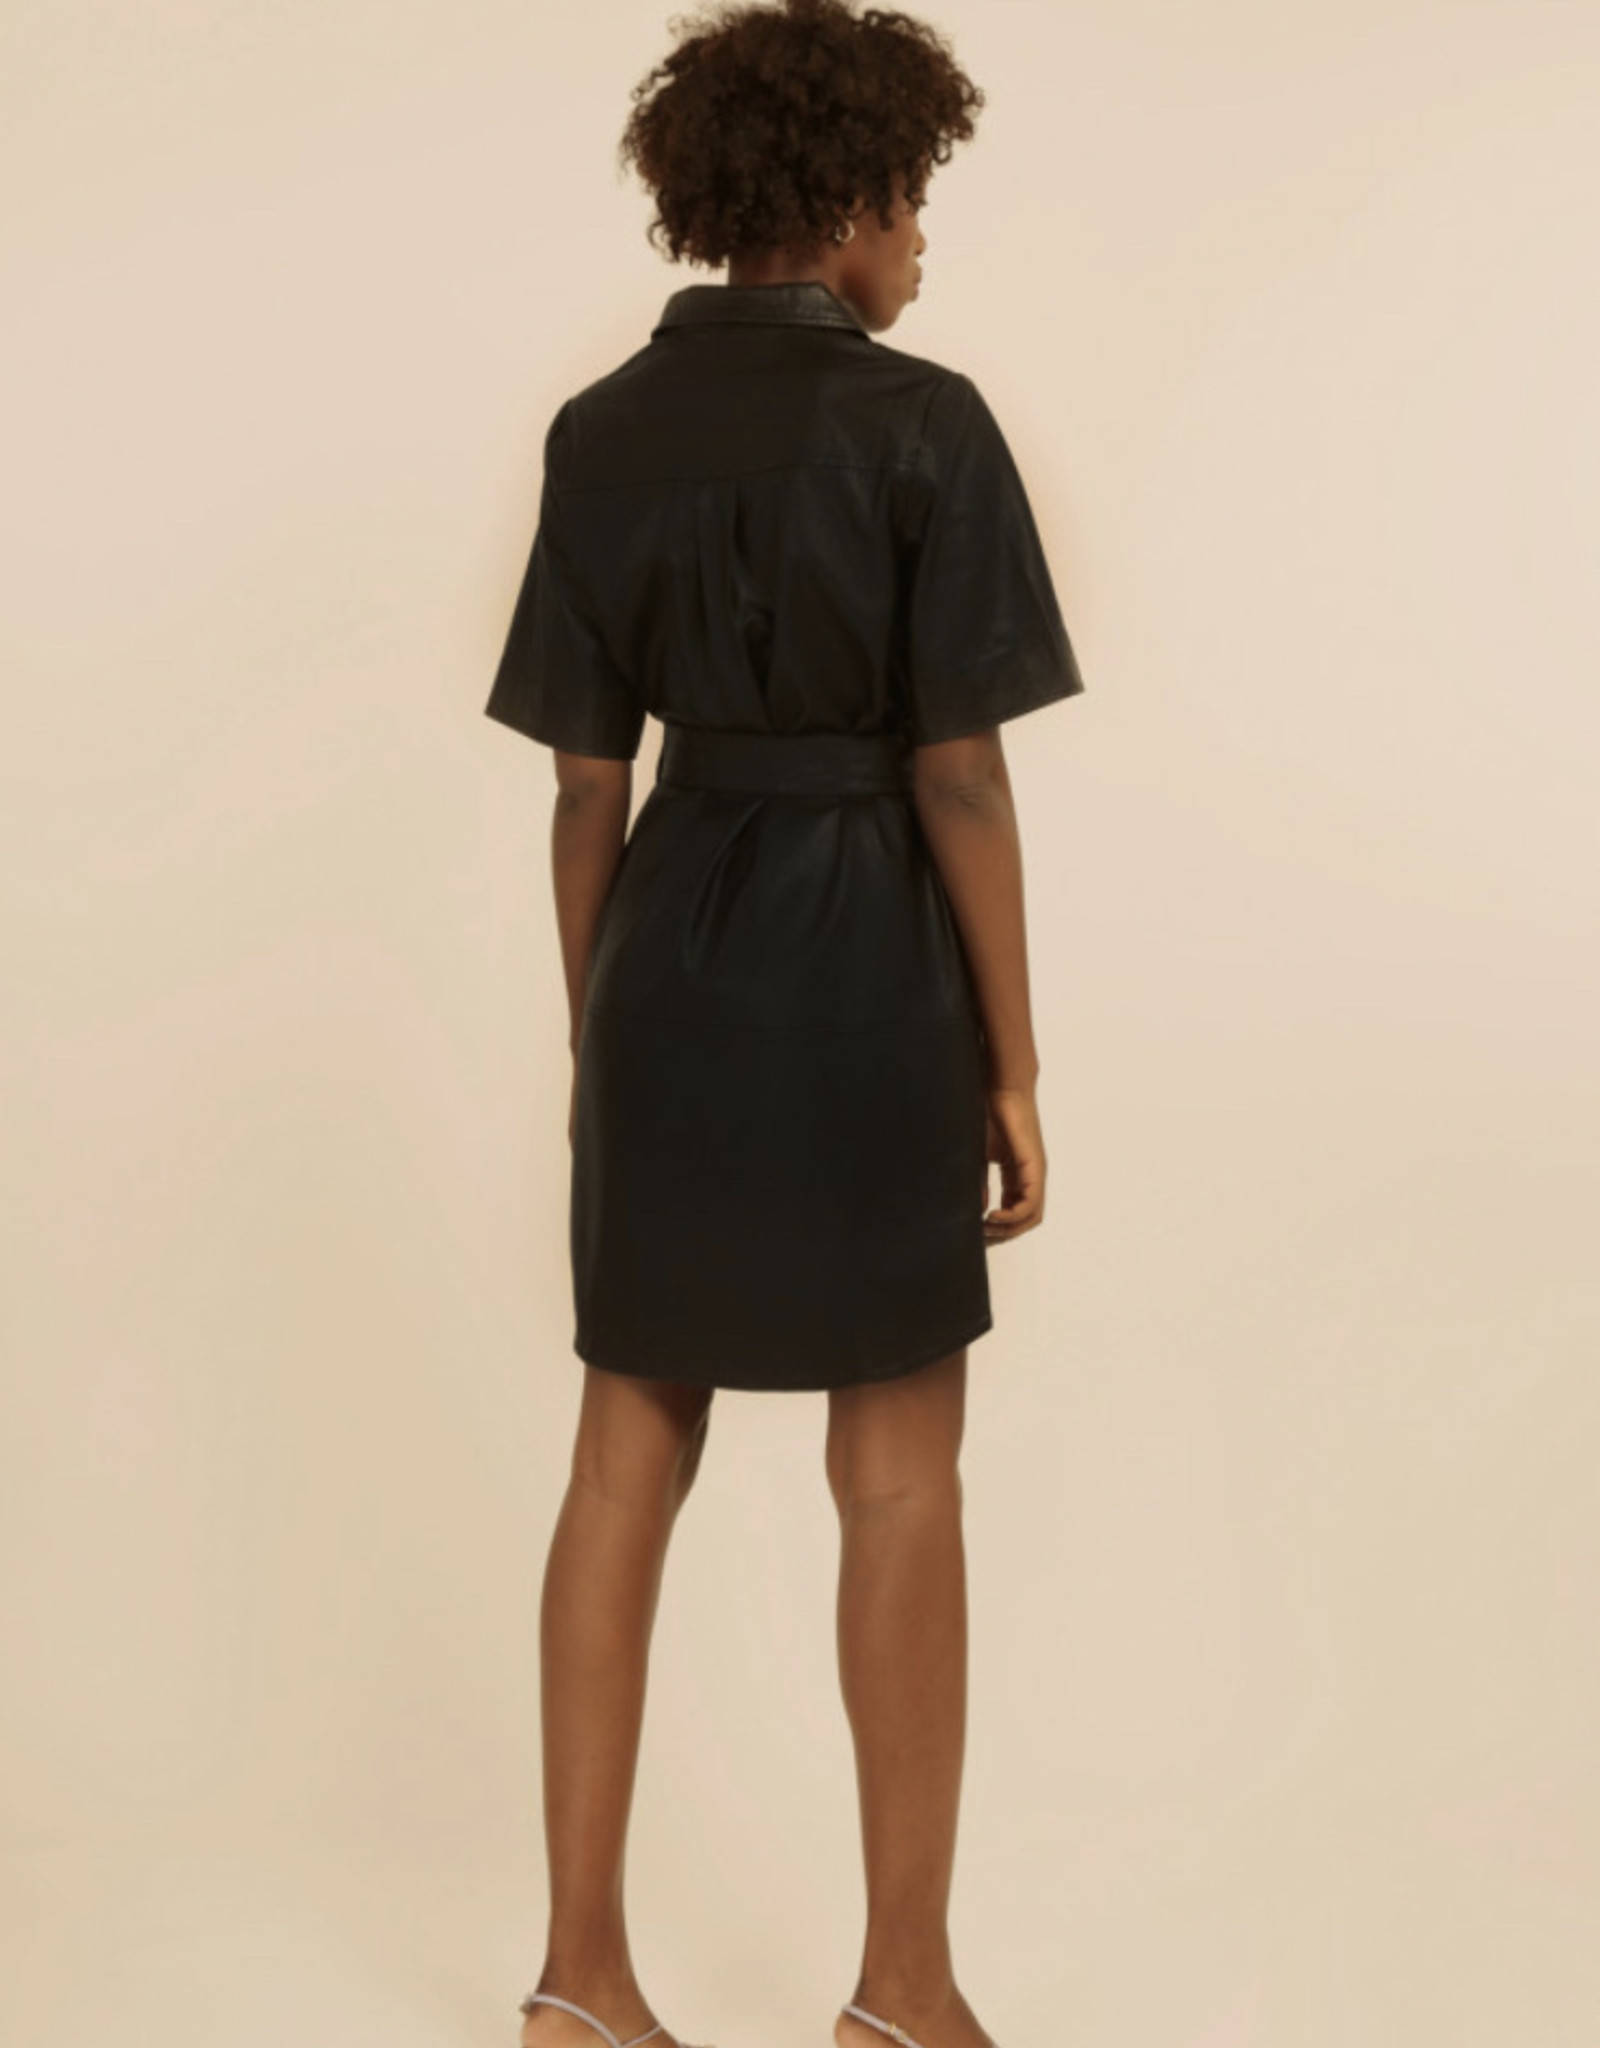 Frnch Adelma Faux Leather Dress